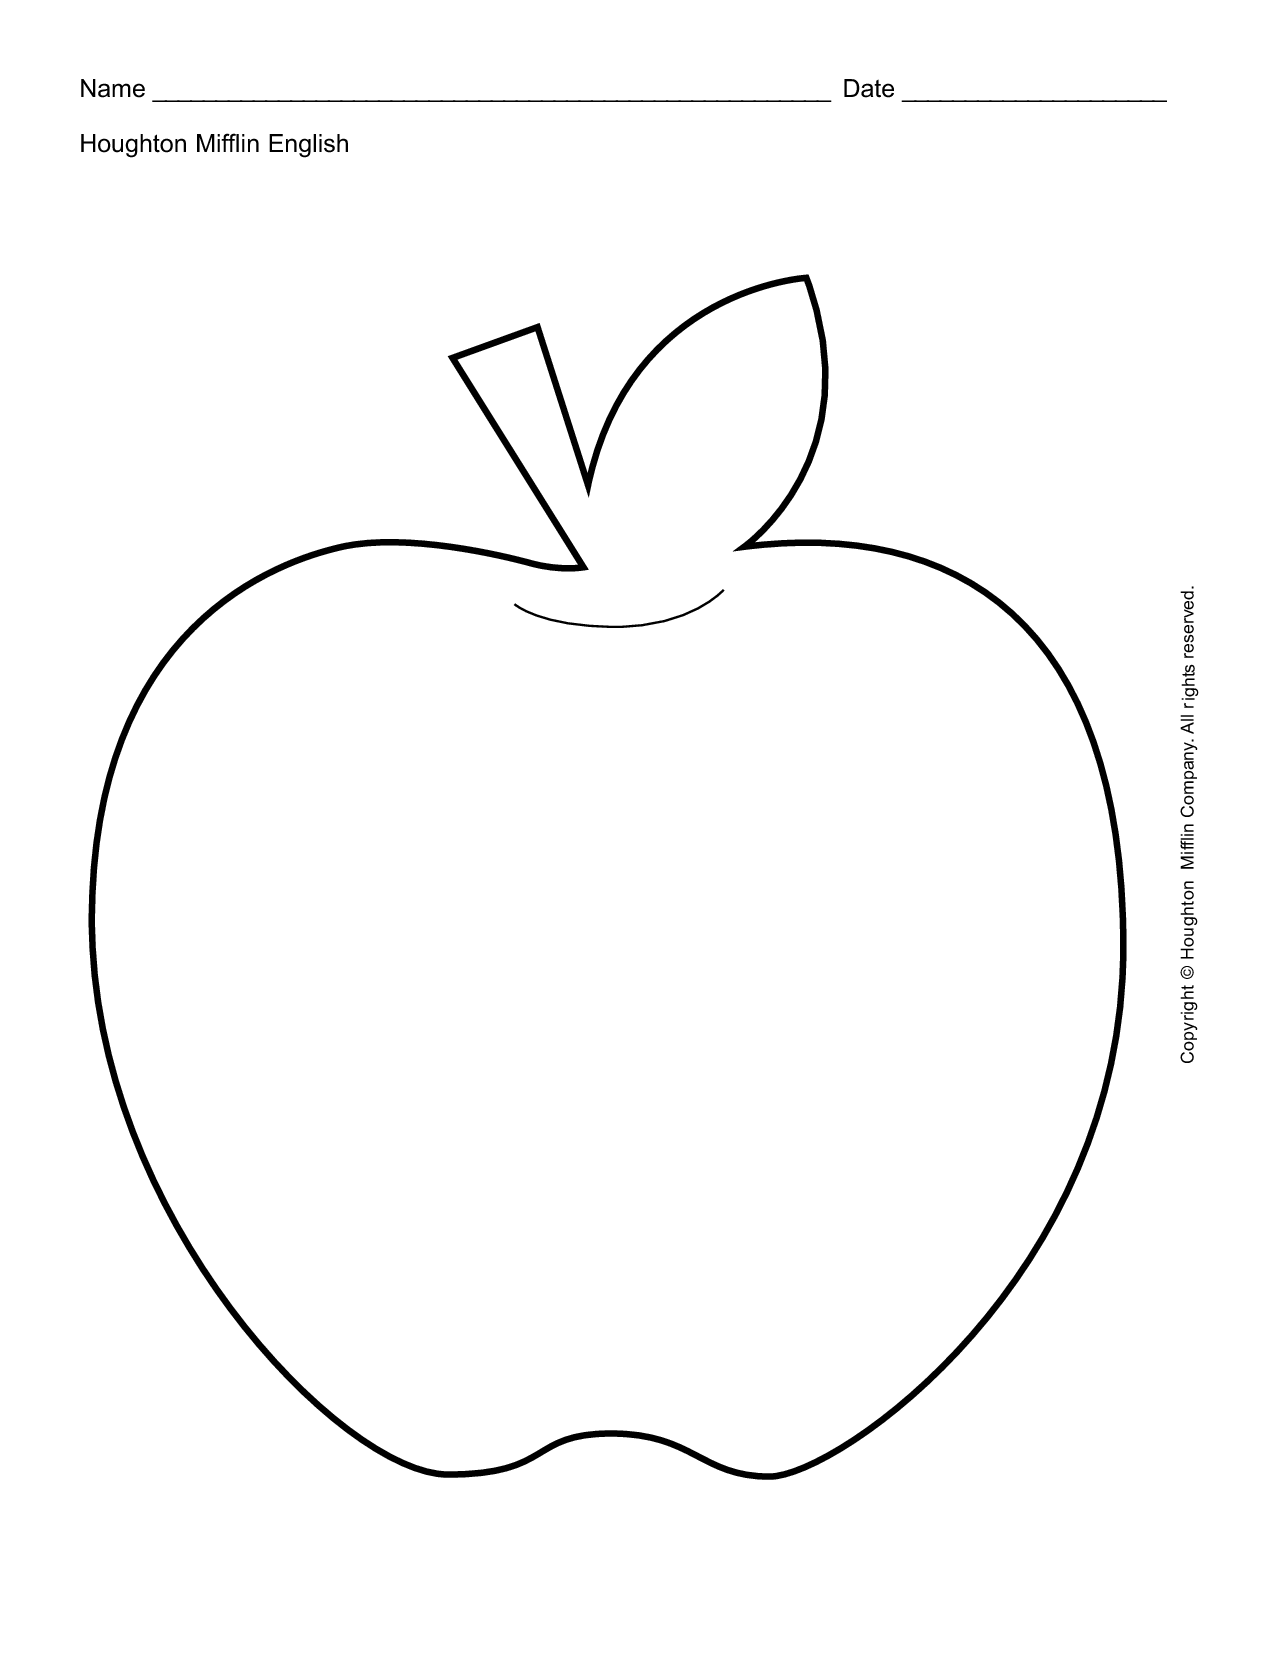 7 Images of Apple Template Printable